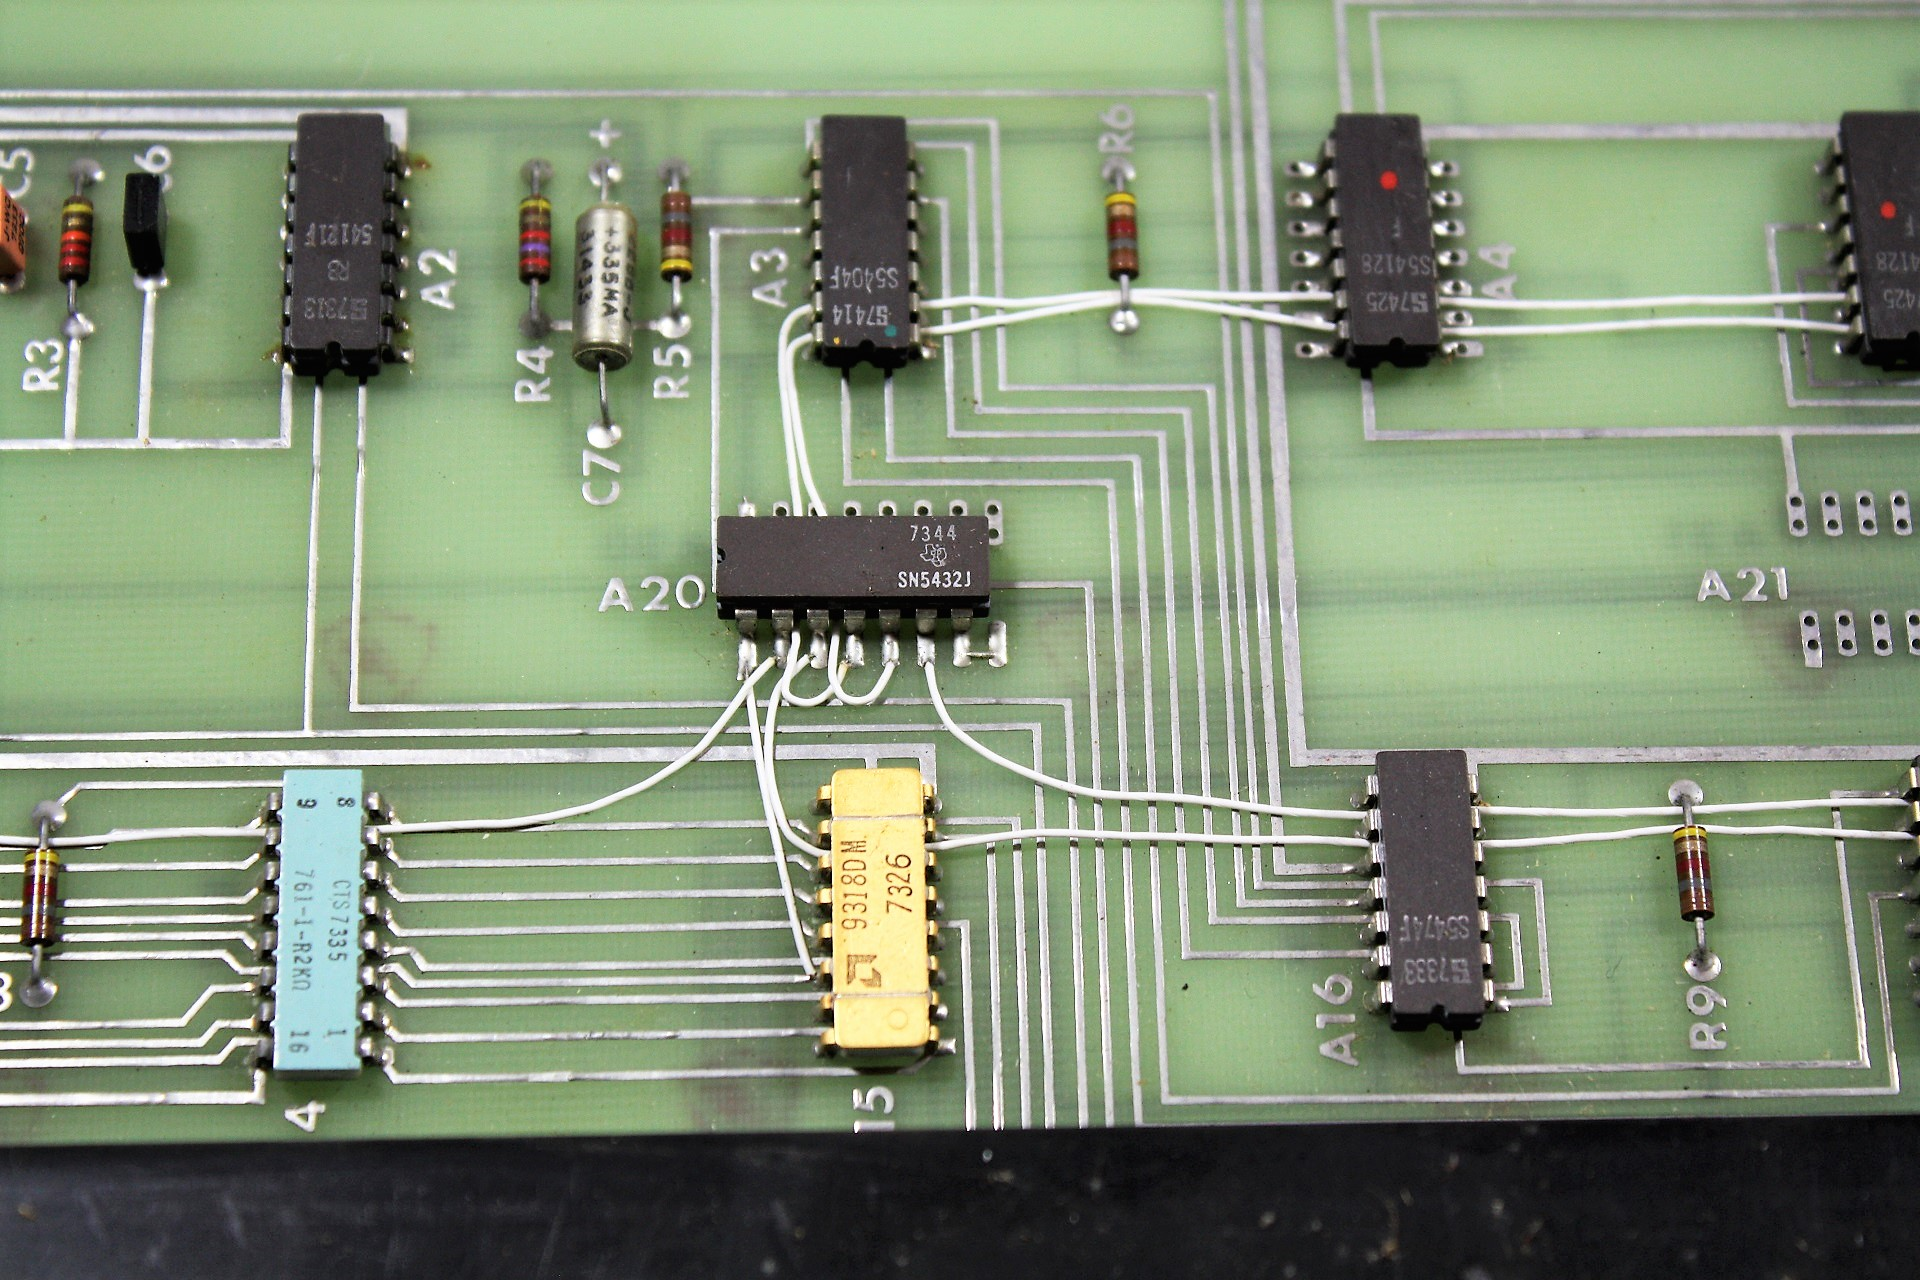 Bendix keyboard - components on keyboard PCB from 1973 - 1974